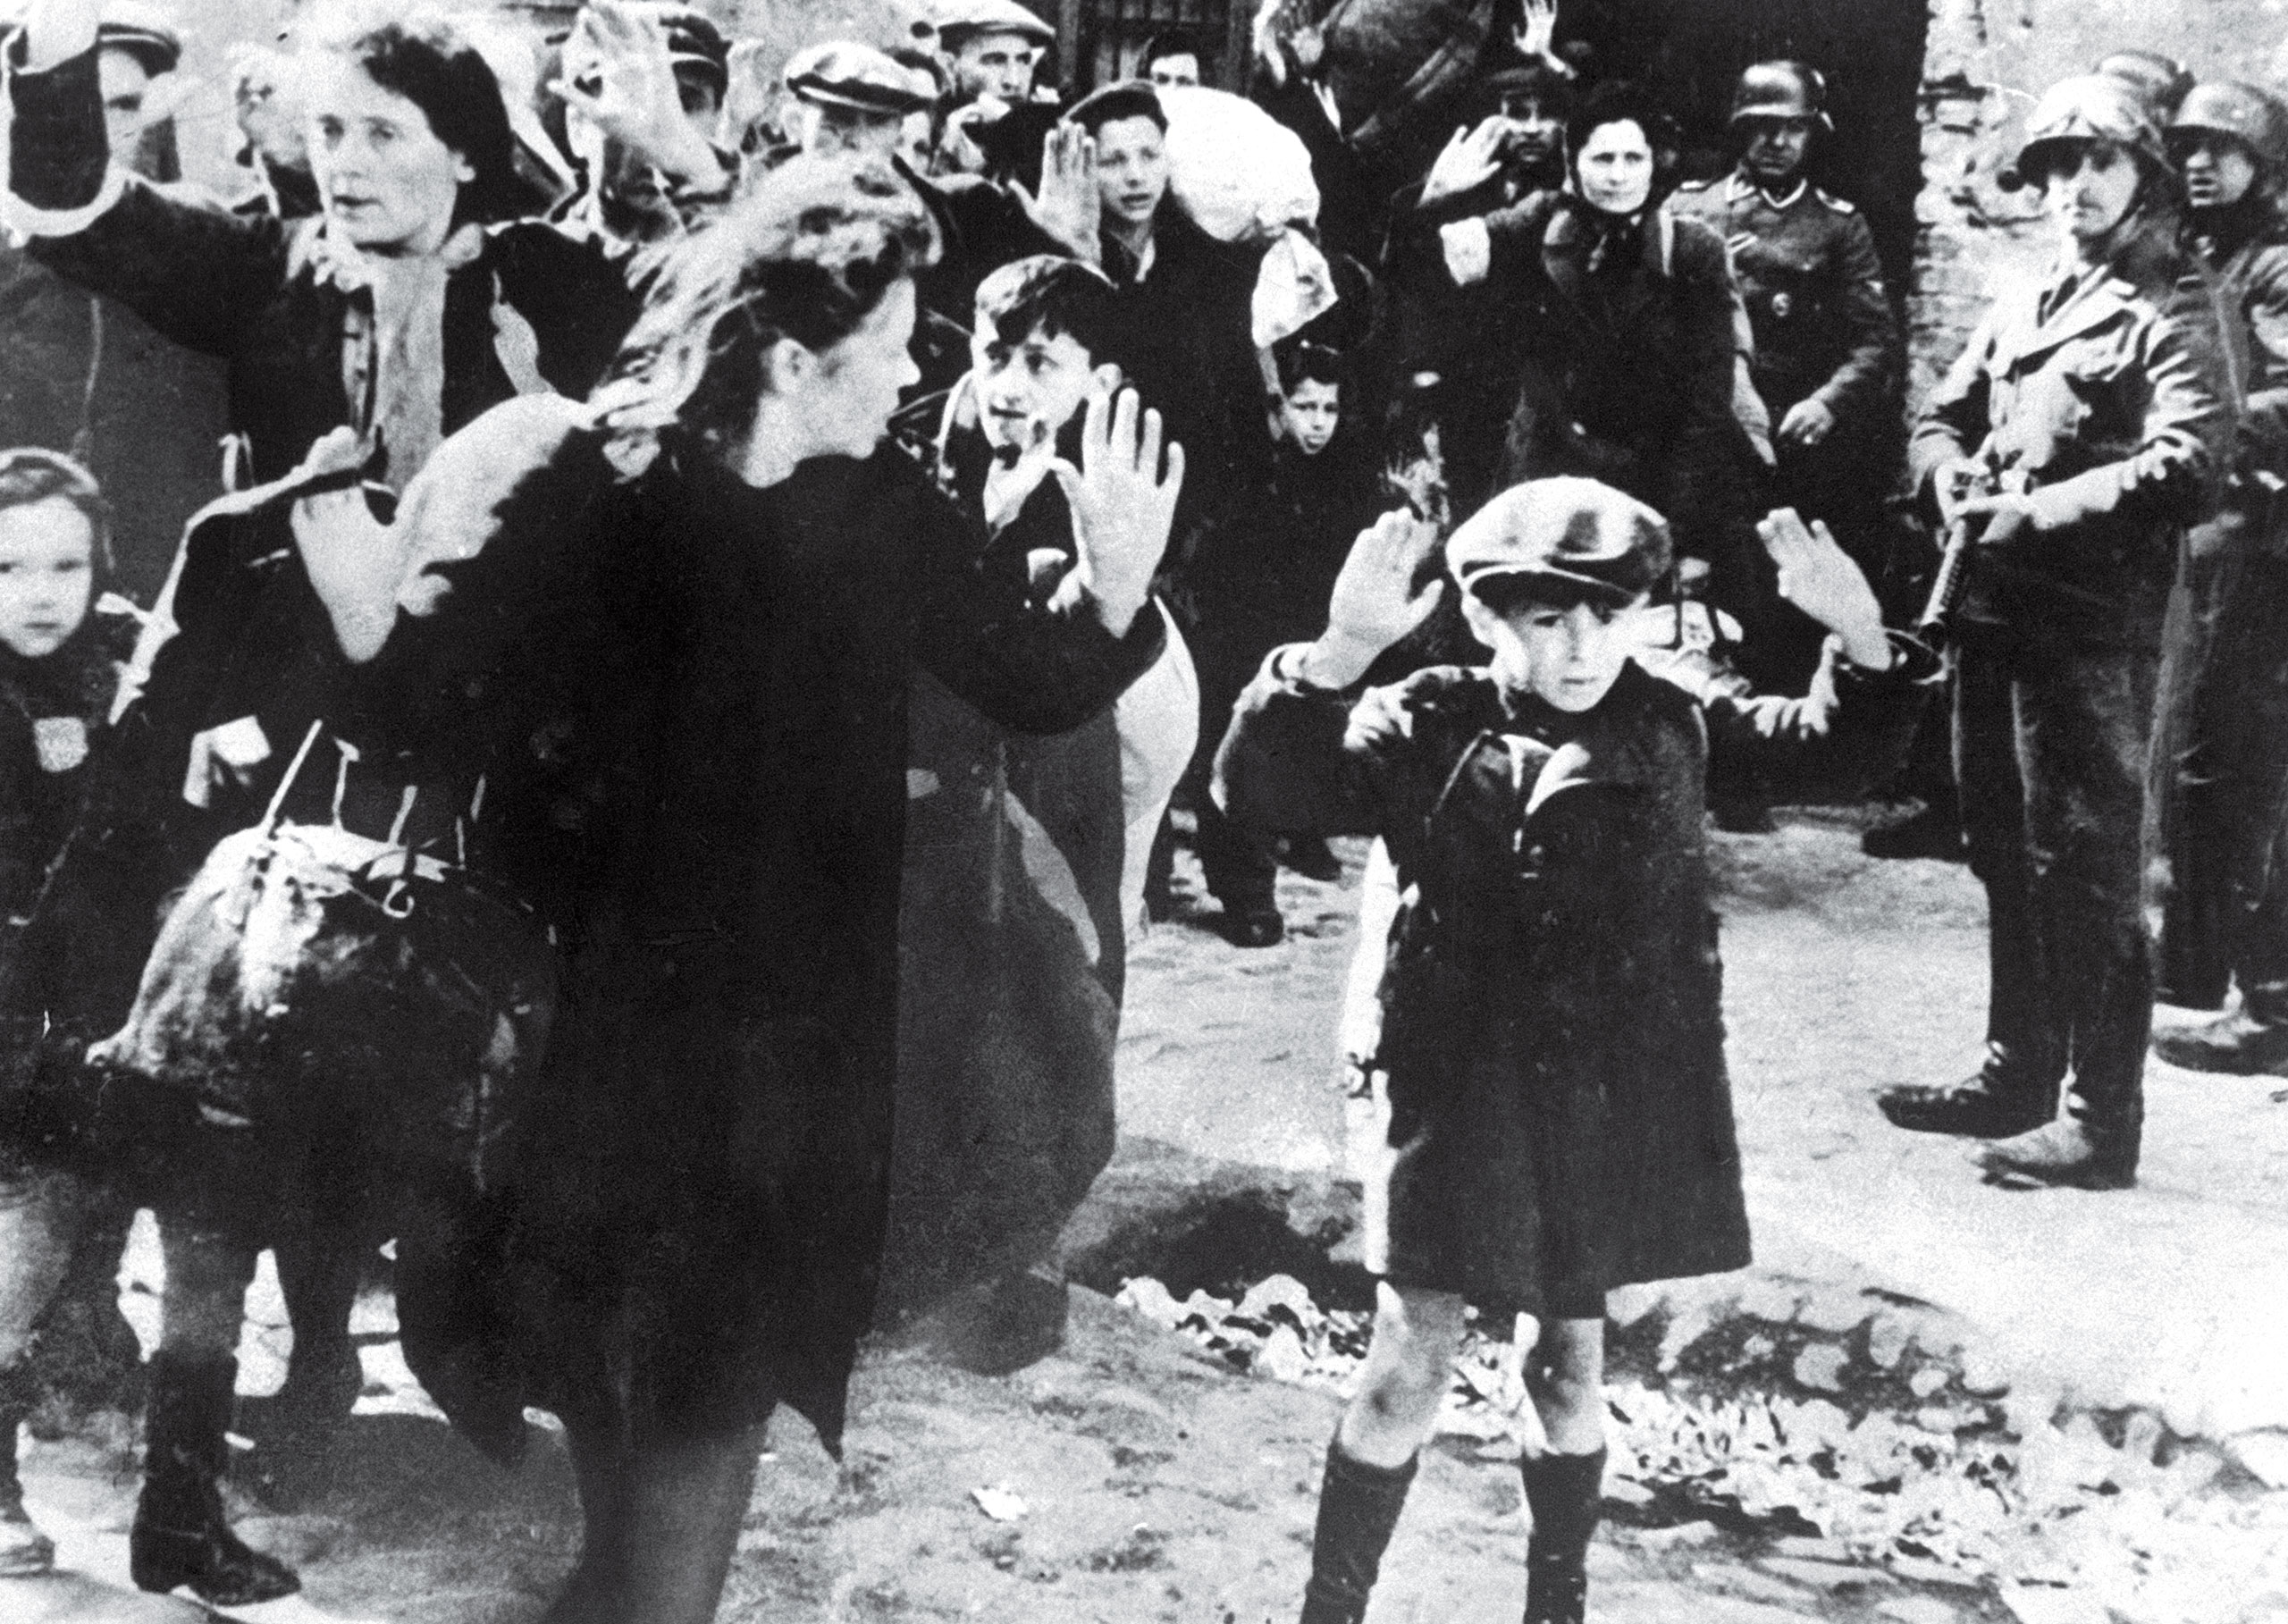 Jewish Boy Surrenders in Warsaw by Unknown Photographer, 1943.